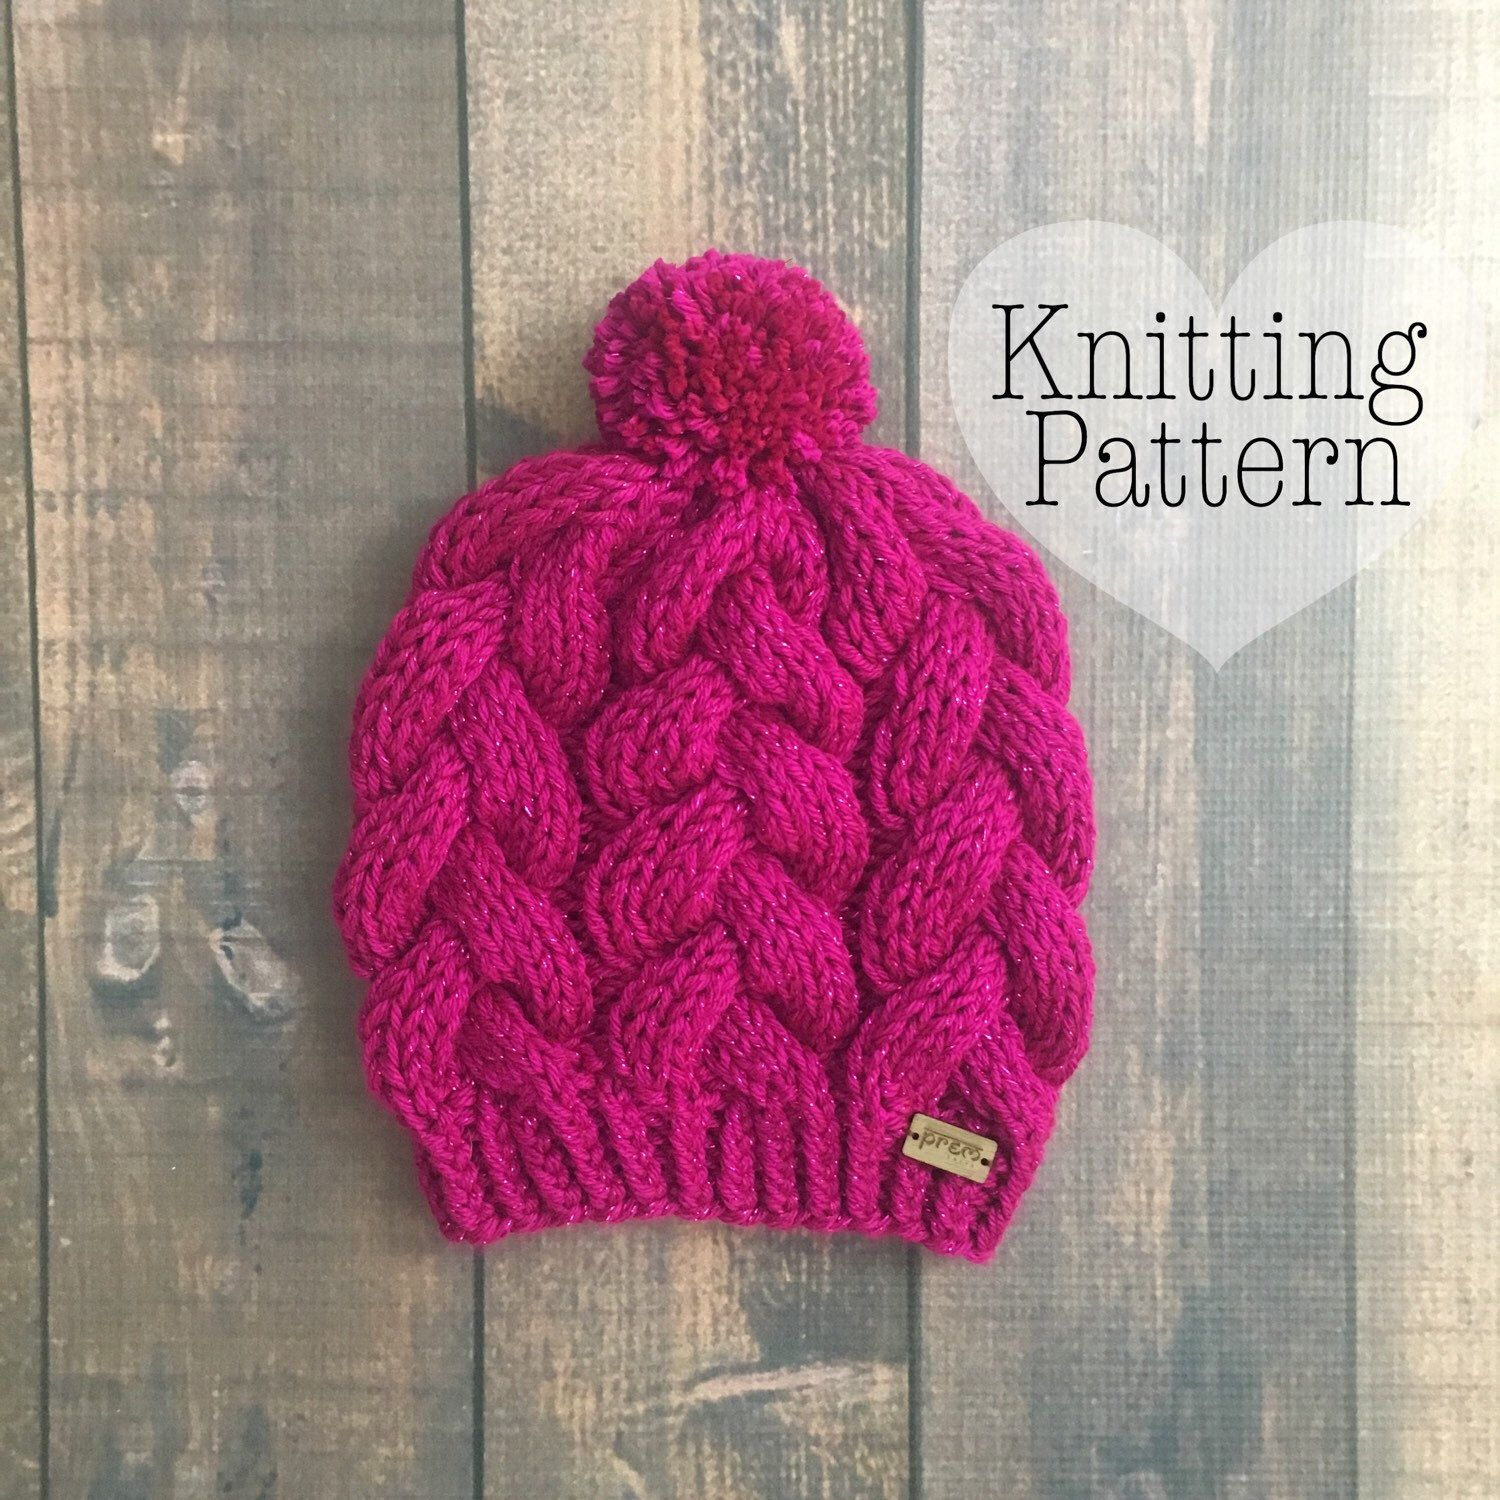 PDF Knitting pattern: This cable knit hat is a simple, easy ...